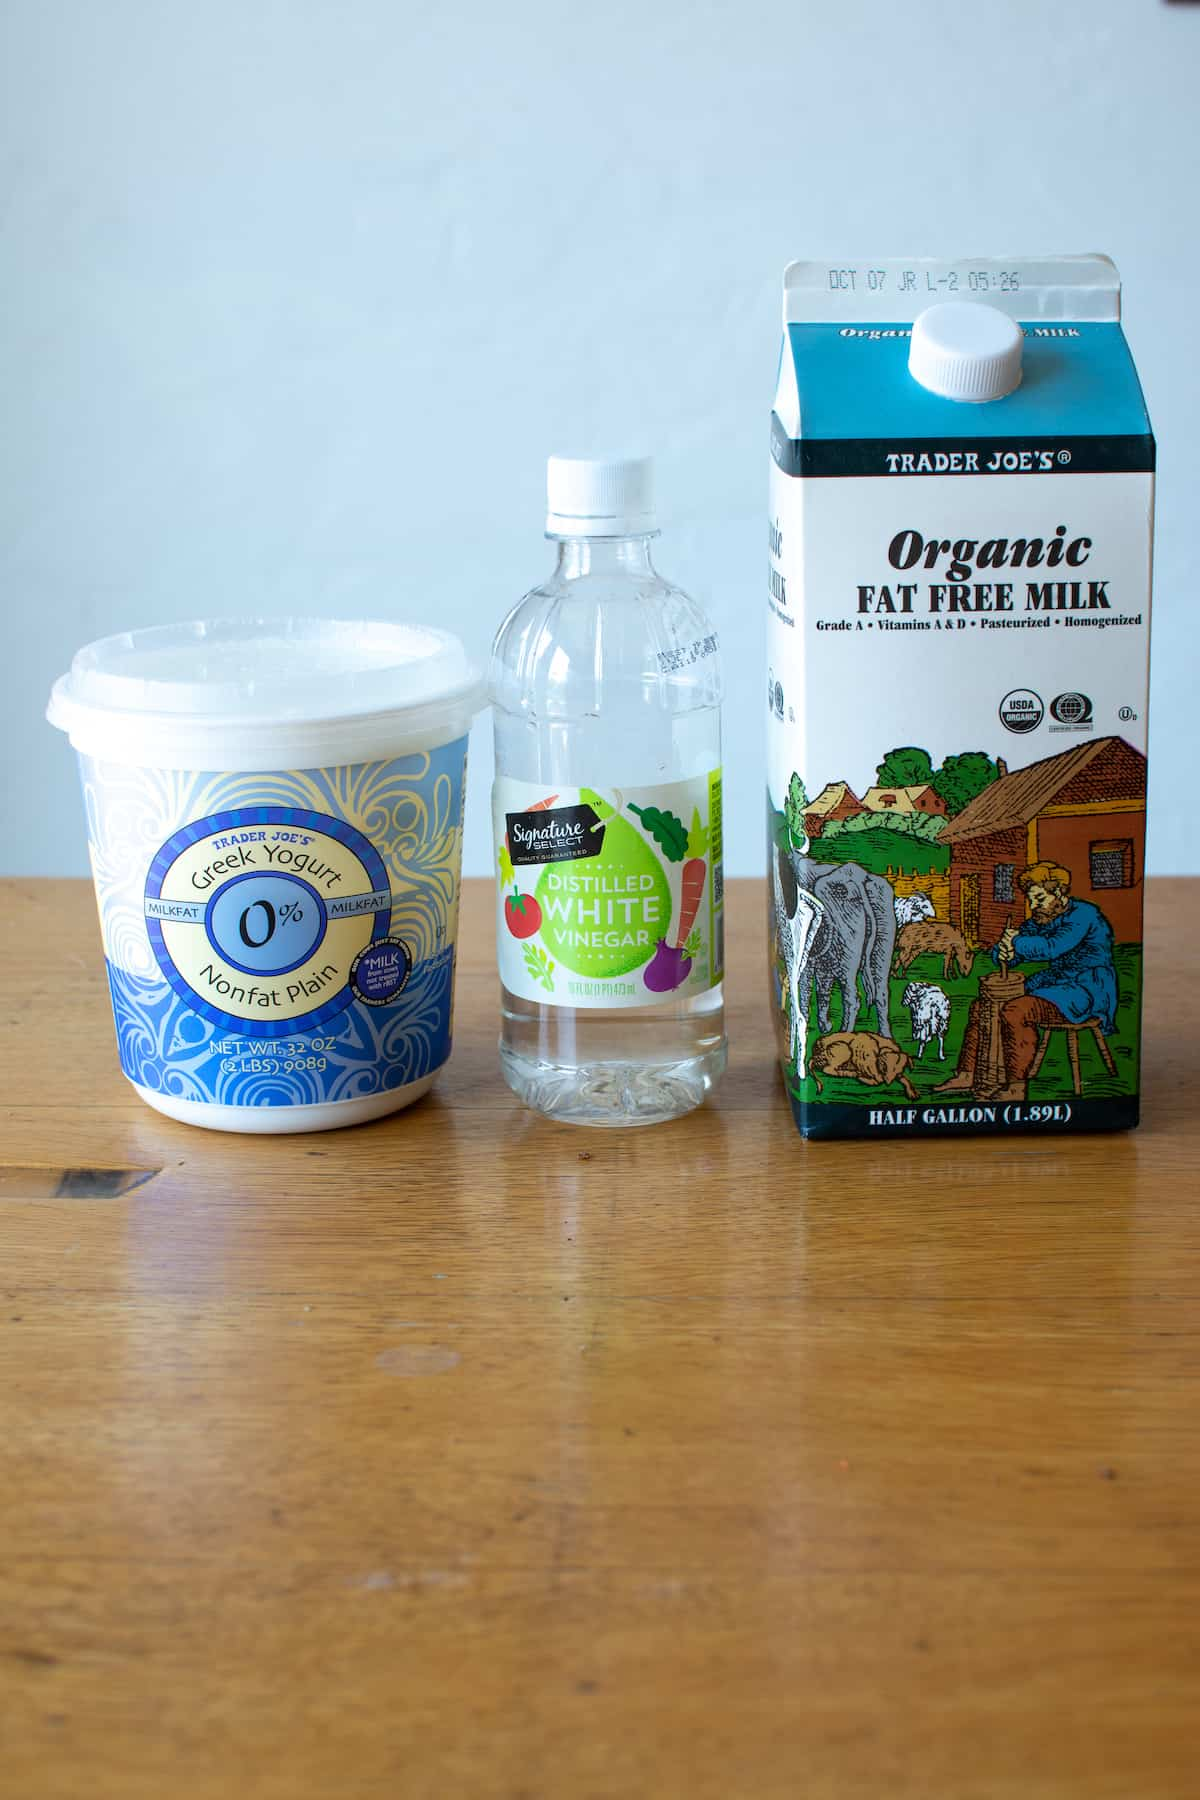 The ingredients needed to make Panela cheese: Greek yogurt, distilled white vinegar, and non-fat milk sitting on a wood table.